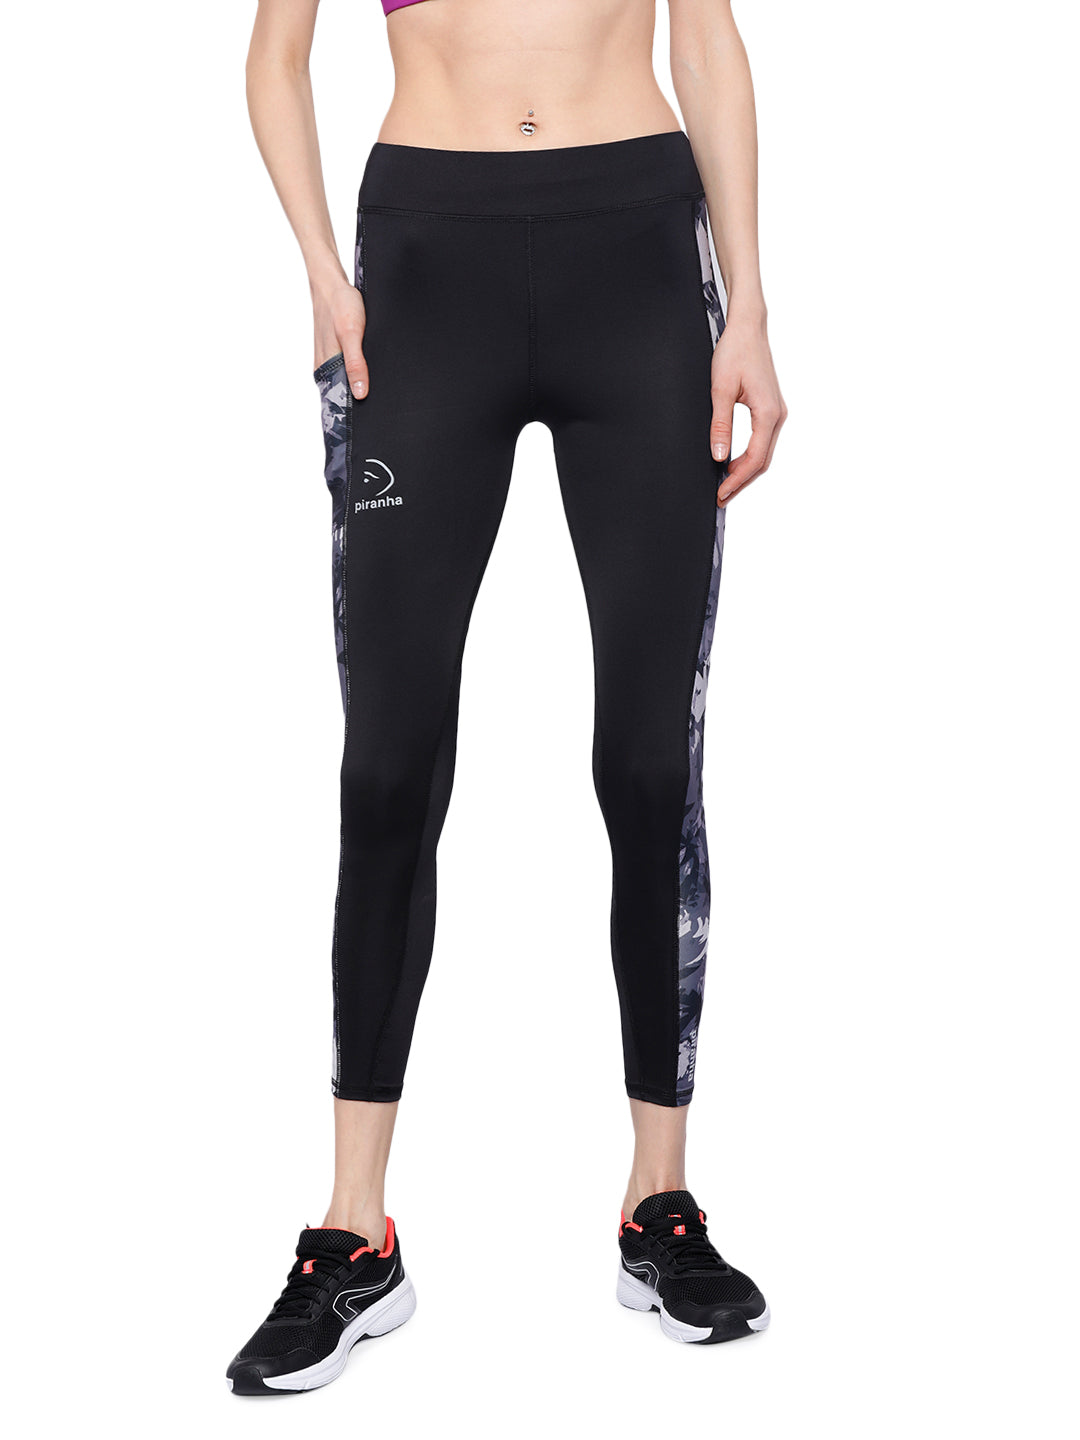 Piranha Women's Printed Yoga And Running Pants - YP255